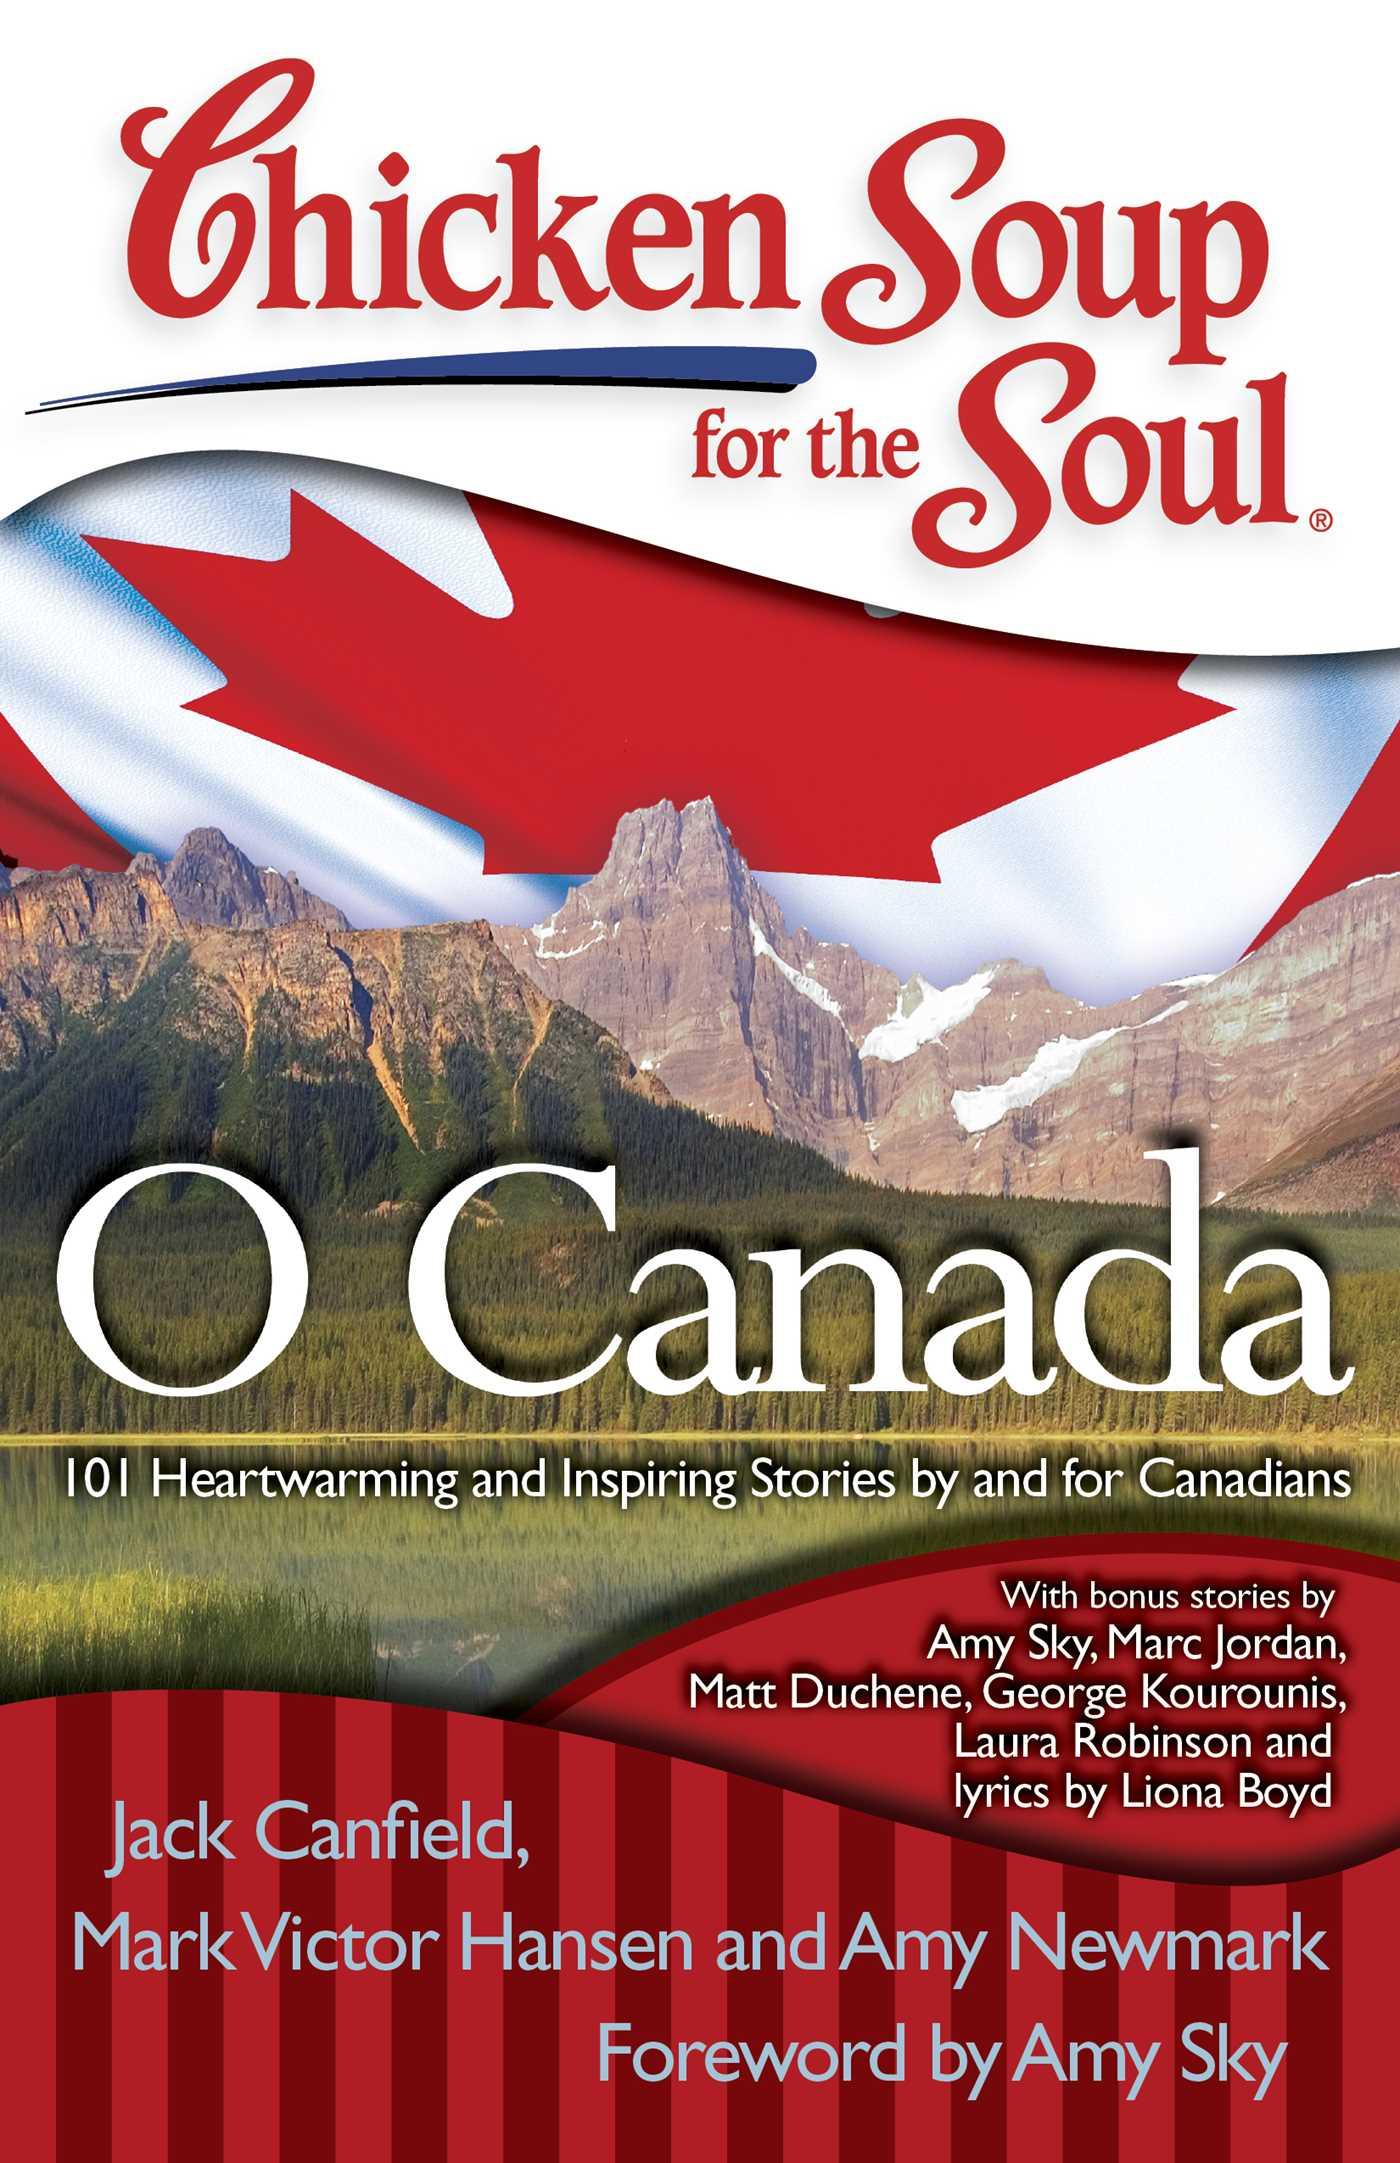 Chicken soup for the soul o canada 9781611591972 hr